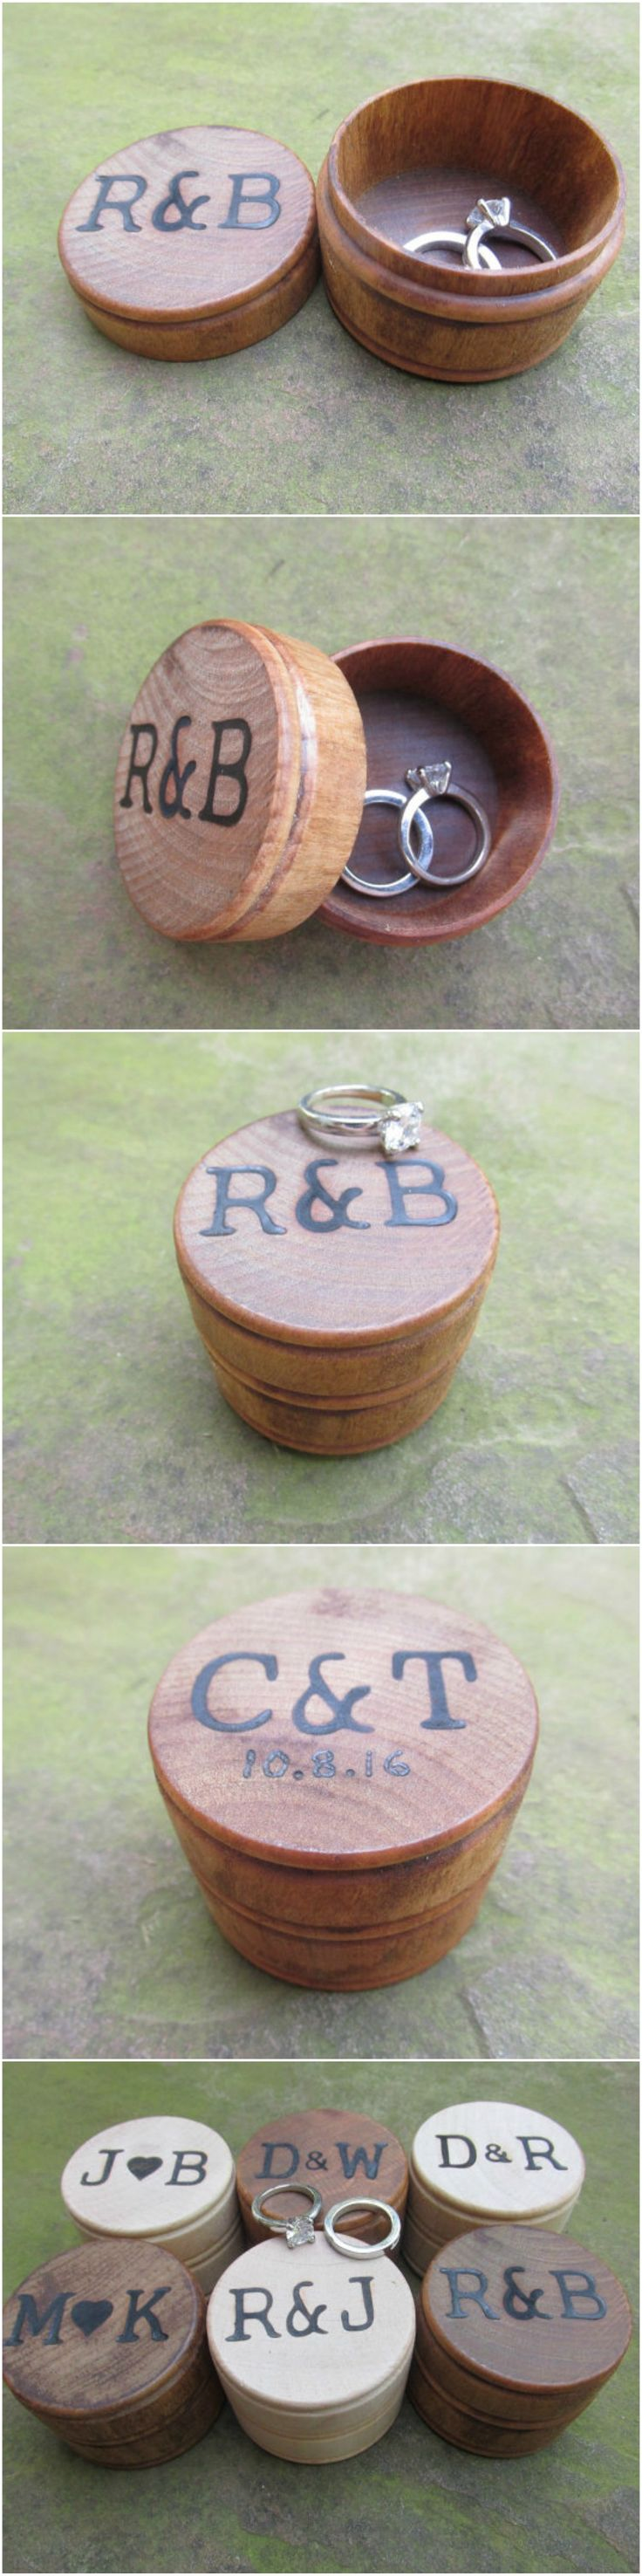 Rustic Country Wedding Ideas - Rustic Ring Bearer Box by Trees2Art